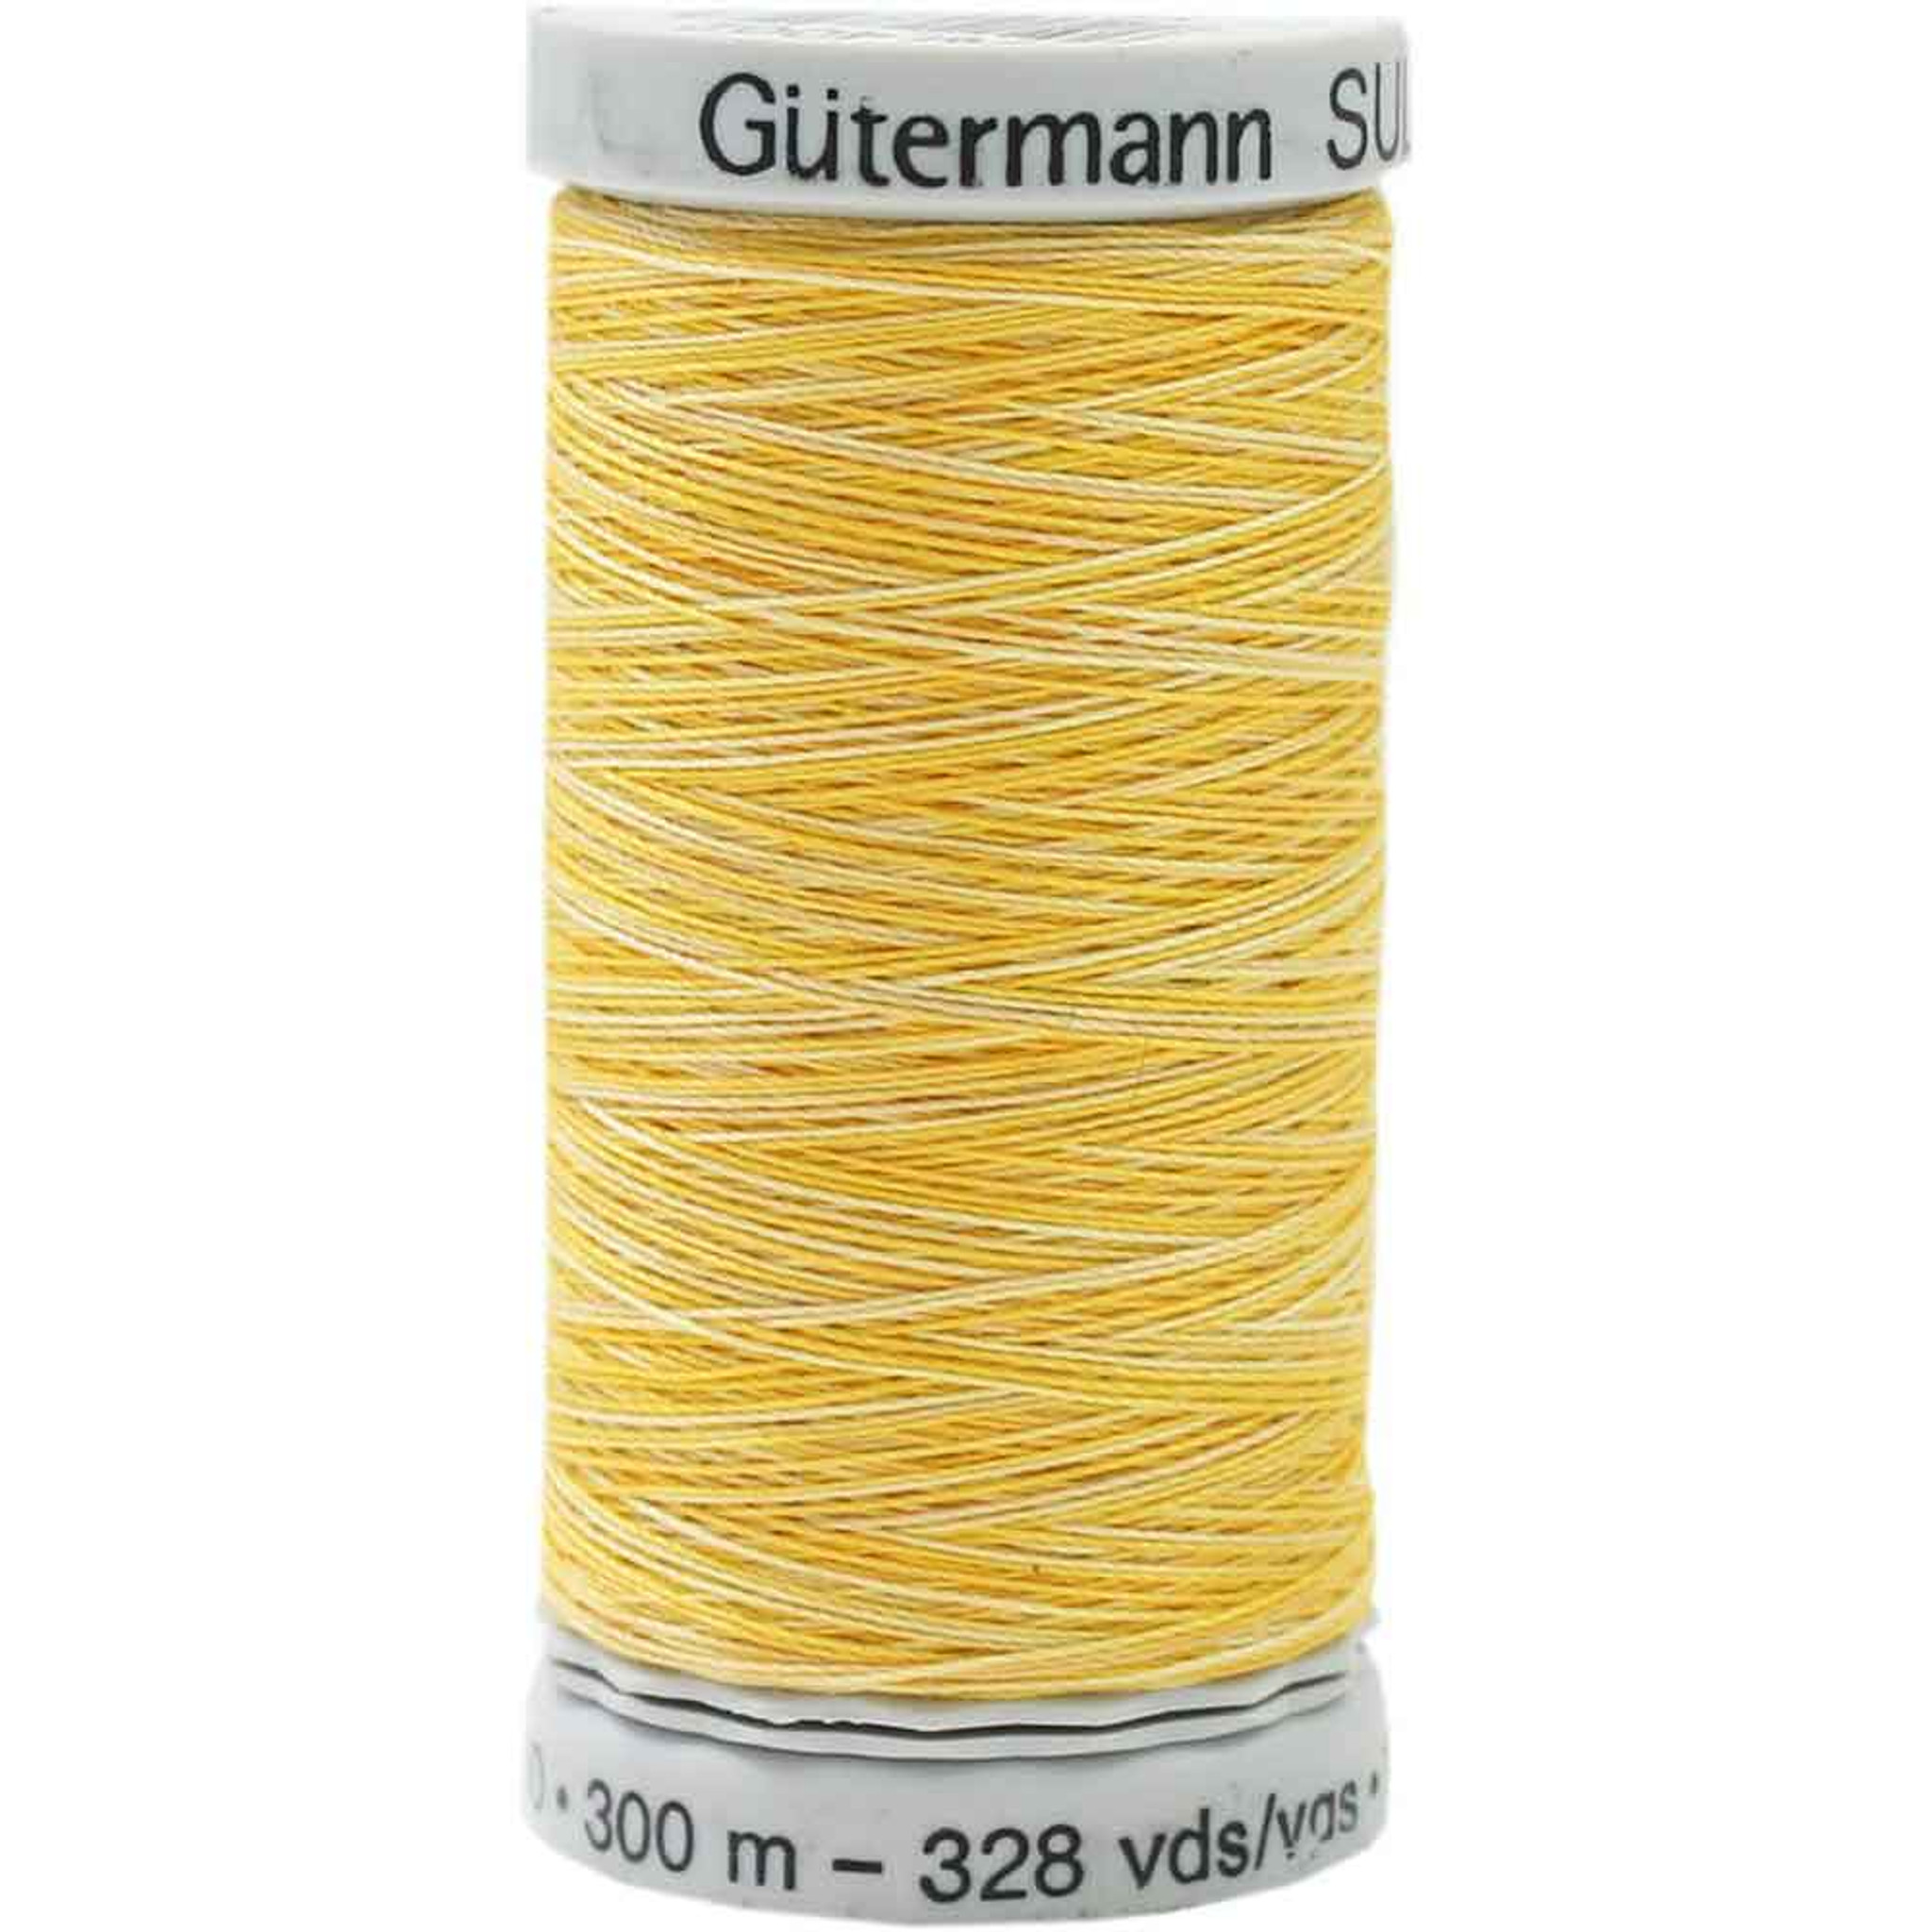 Embroidery  thread Gutermann Sulky Cotton Machine Embroidery No 30 300m  4014